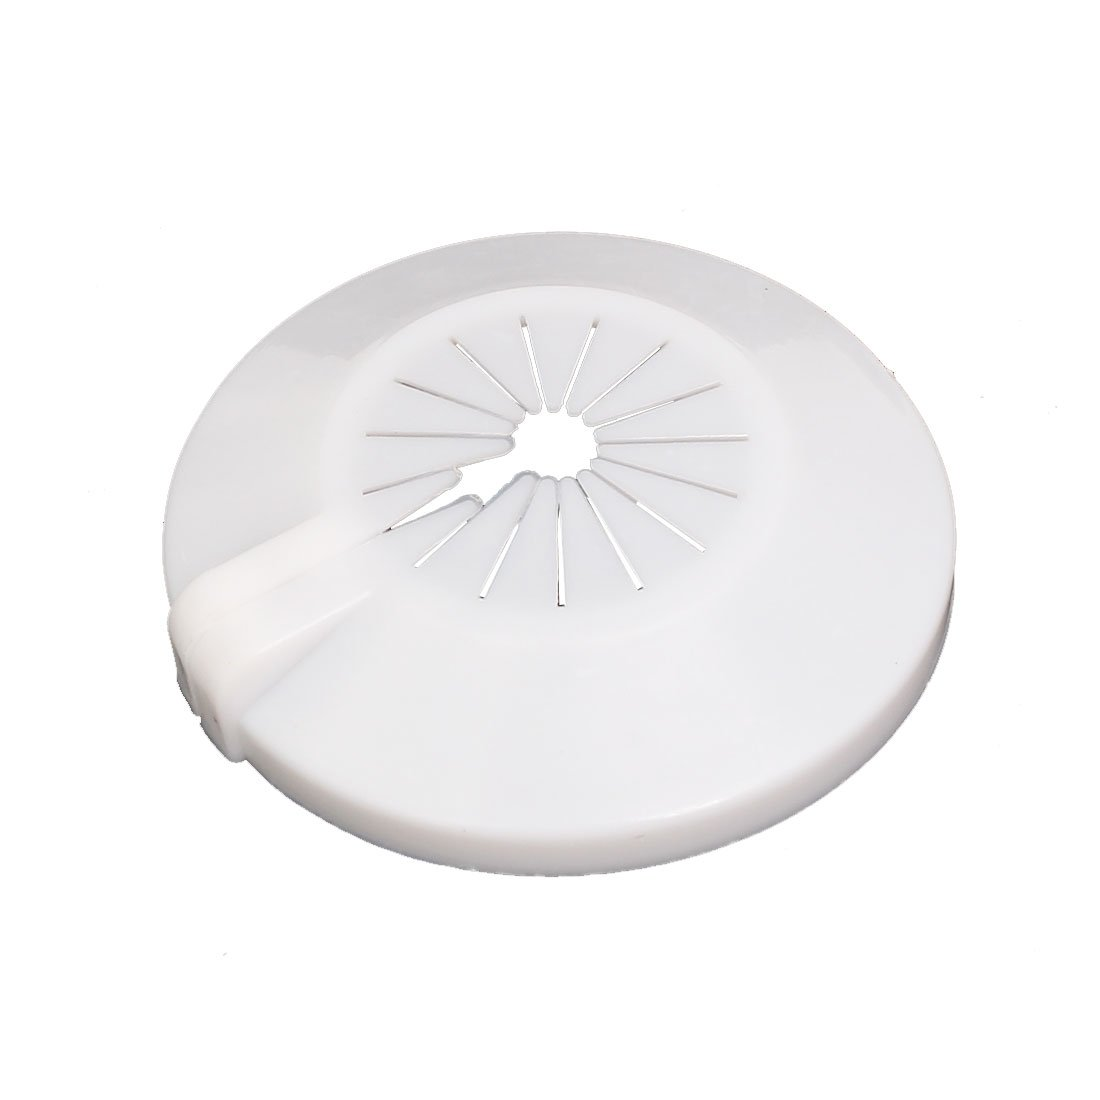 uxcell Universal 15mm-29mm Radiator Plastic Water Pipe Cover Collar White